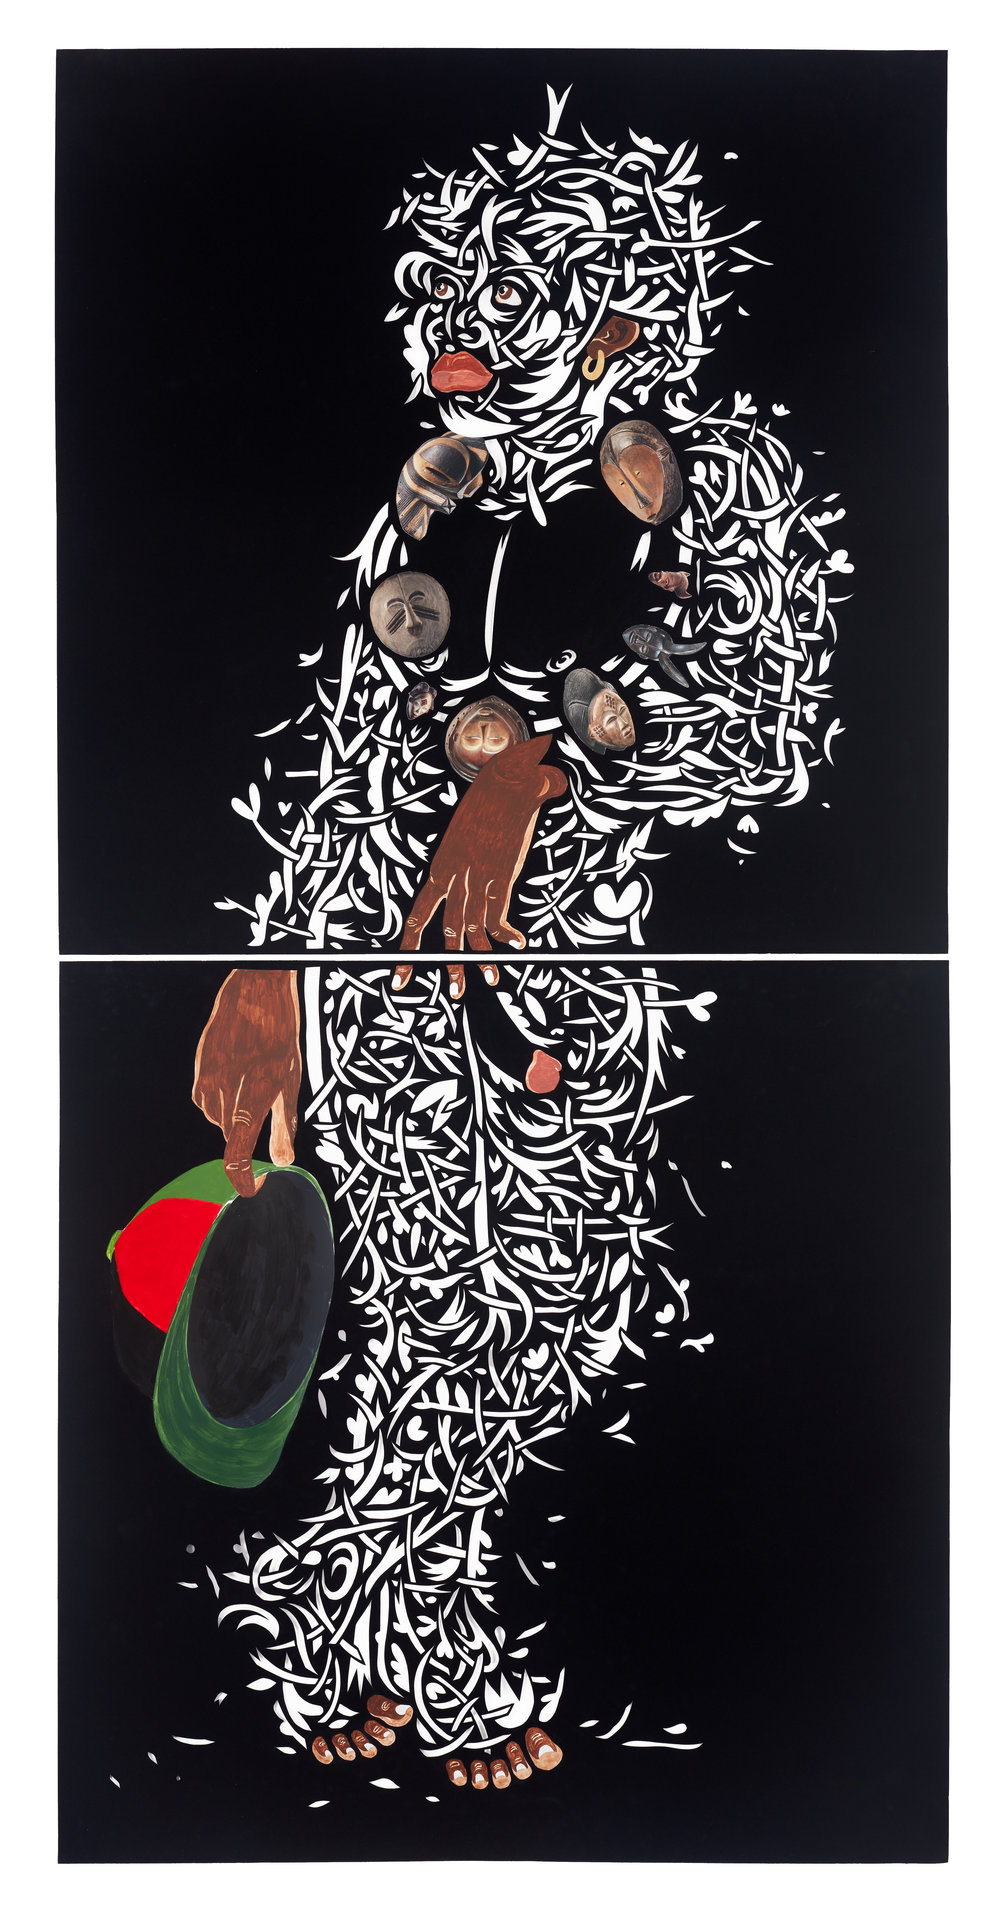 obertura de la espora (time dancer) - acrylic, paper collage and cut velour paper80 1/4 x 39 1/2 in. sheet( 2 sheets, 40 x 1/8 x 39 1/2 in. each )85 1/4 x 44 5/8 in. framed